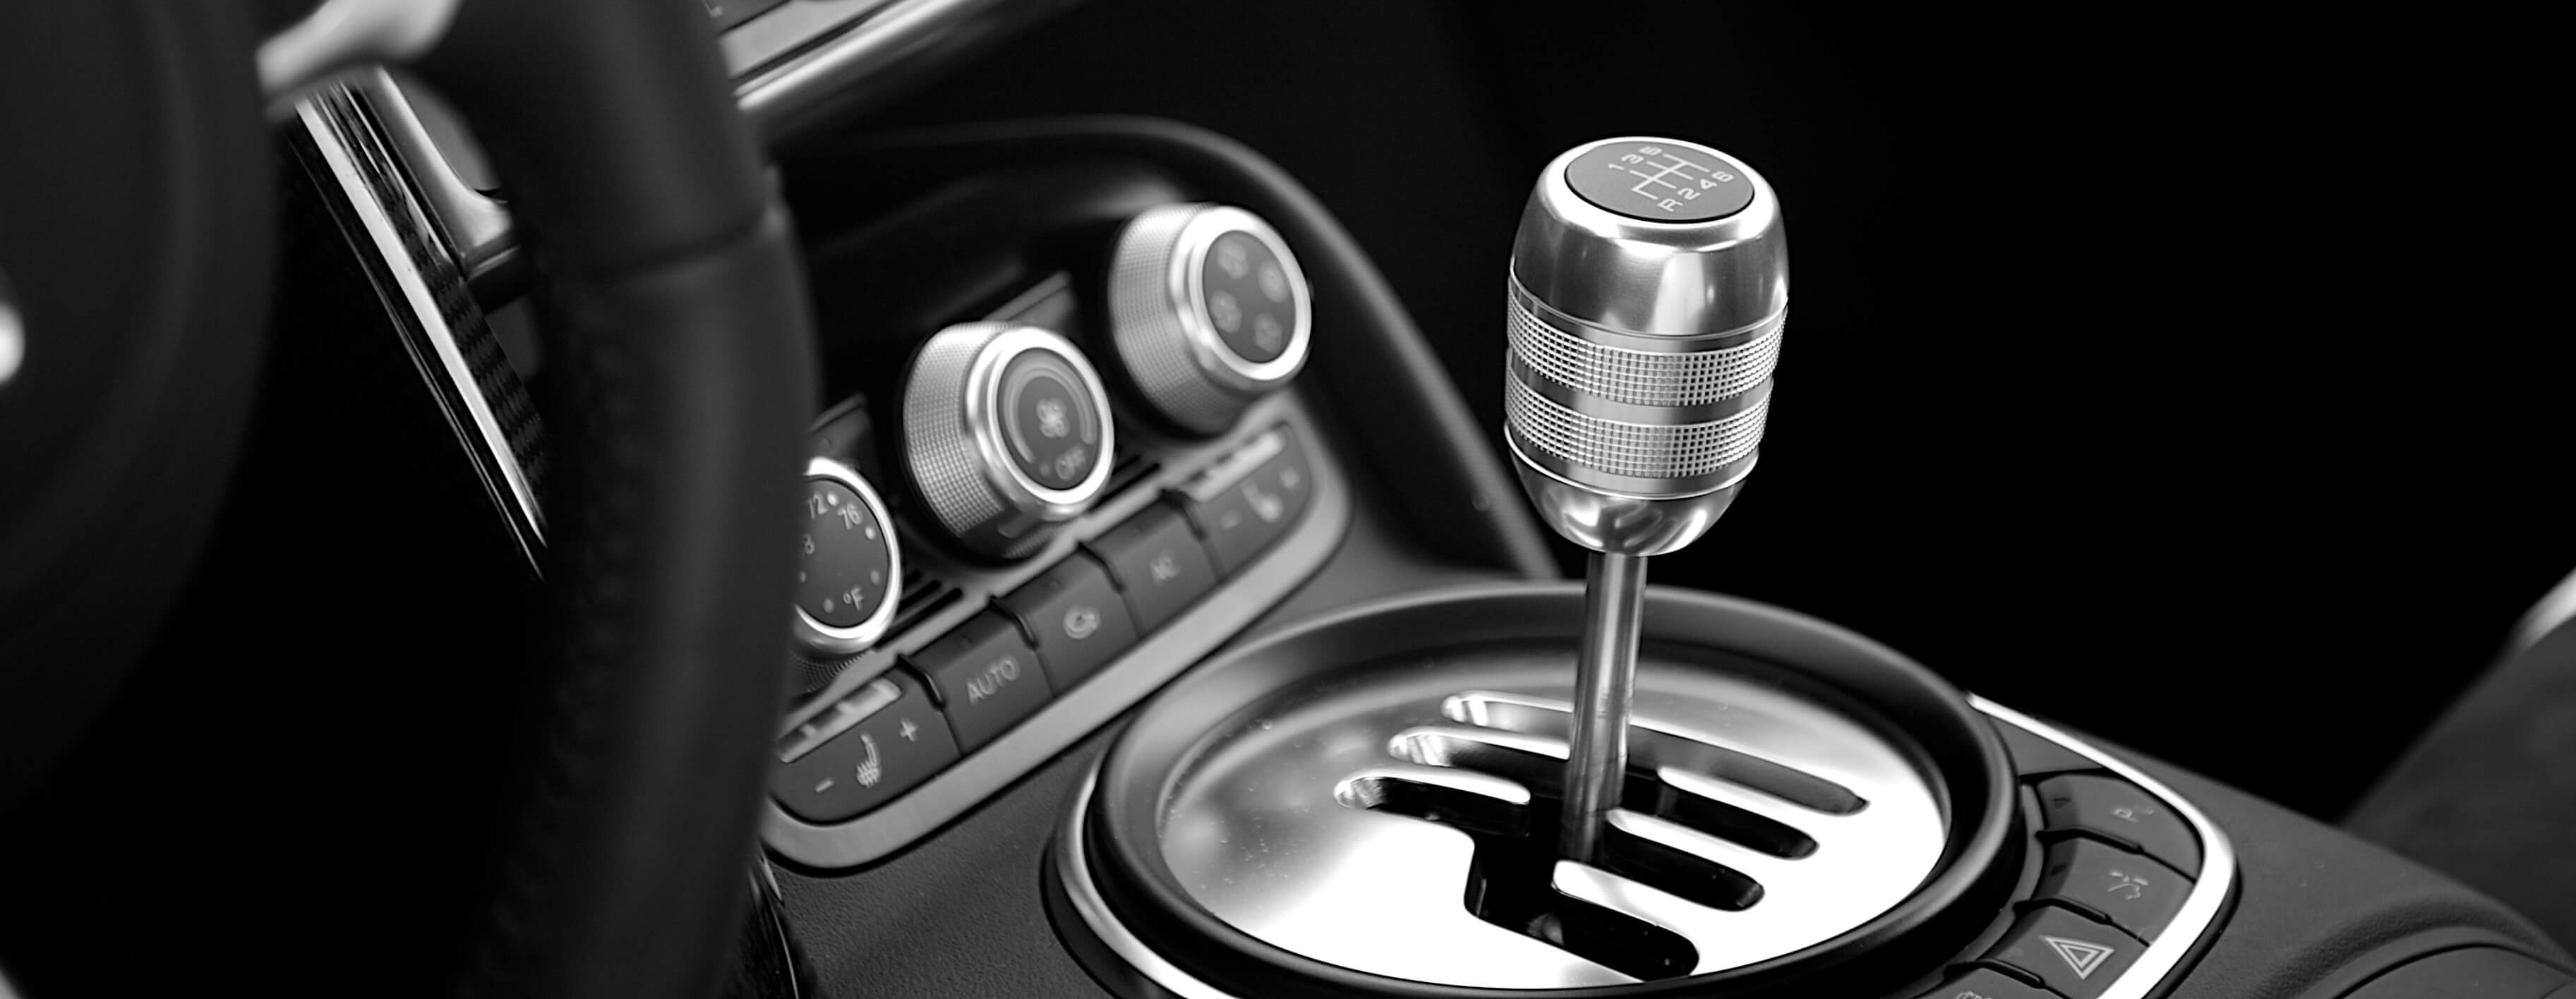 Tips for Owning a Car with Manual Transmission in Saint Cloud, MN